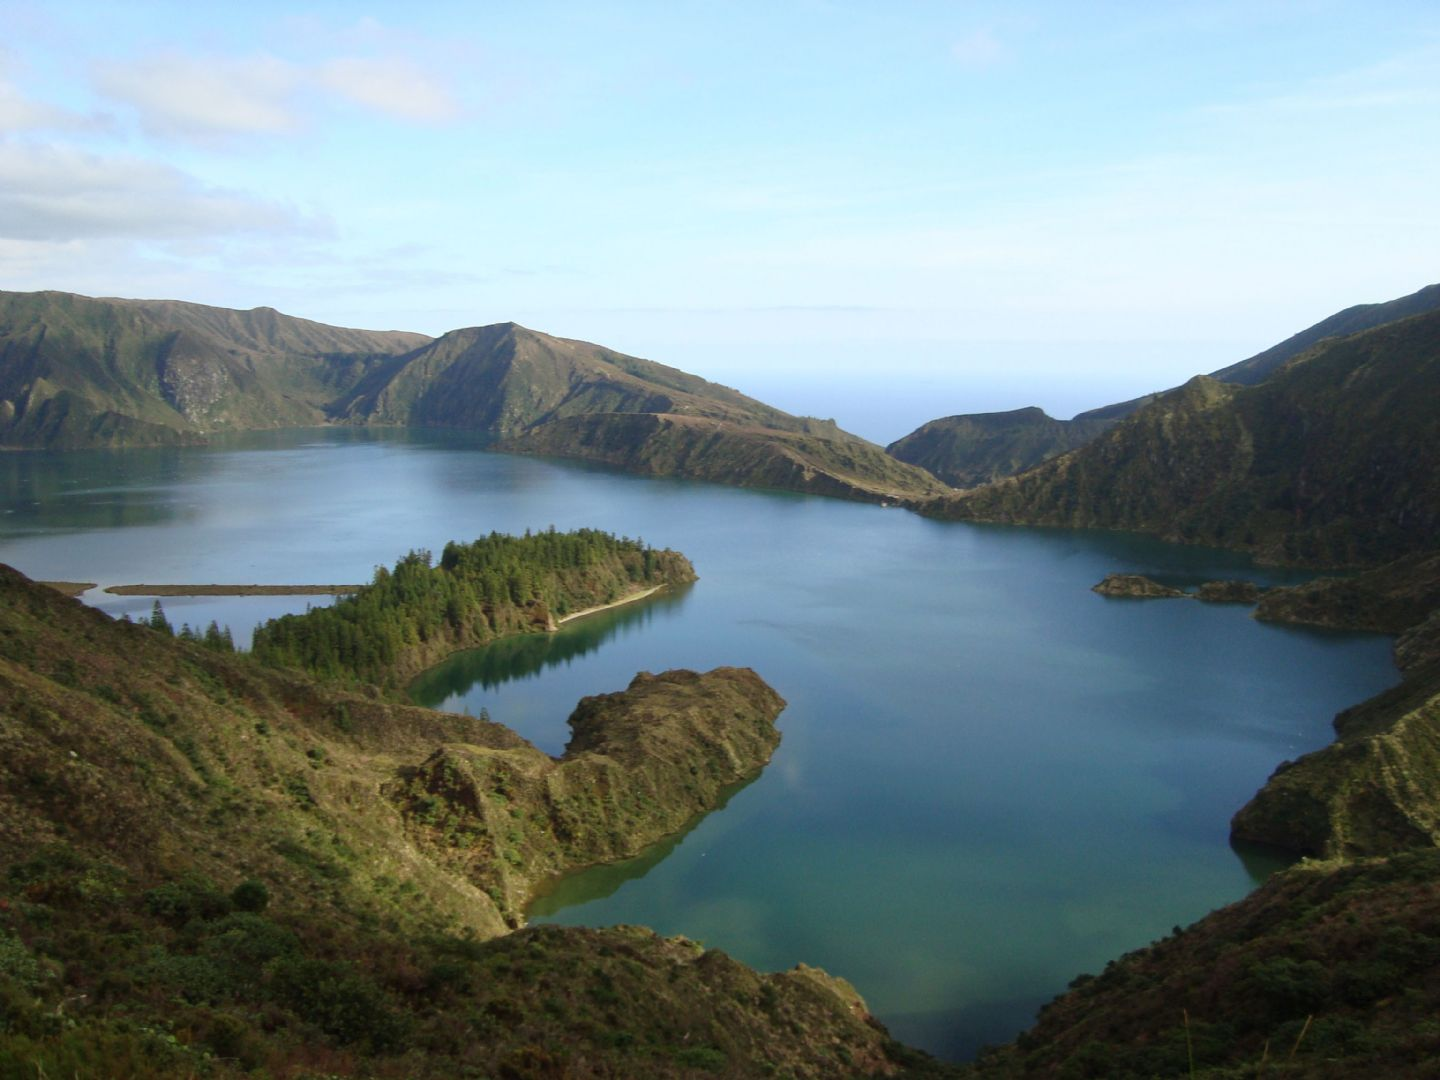 Azores Cycling Holiday 18.JPG - The Azores - Lakes and Volcanoes - Self-Guided Road Cycling Holiday - Road Cycling